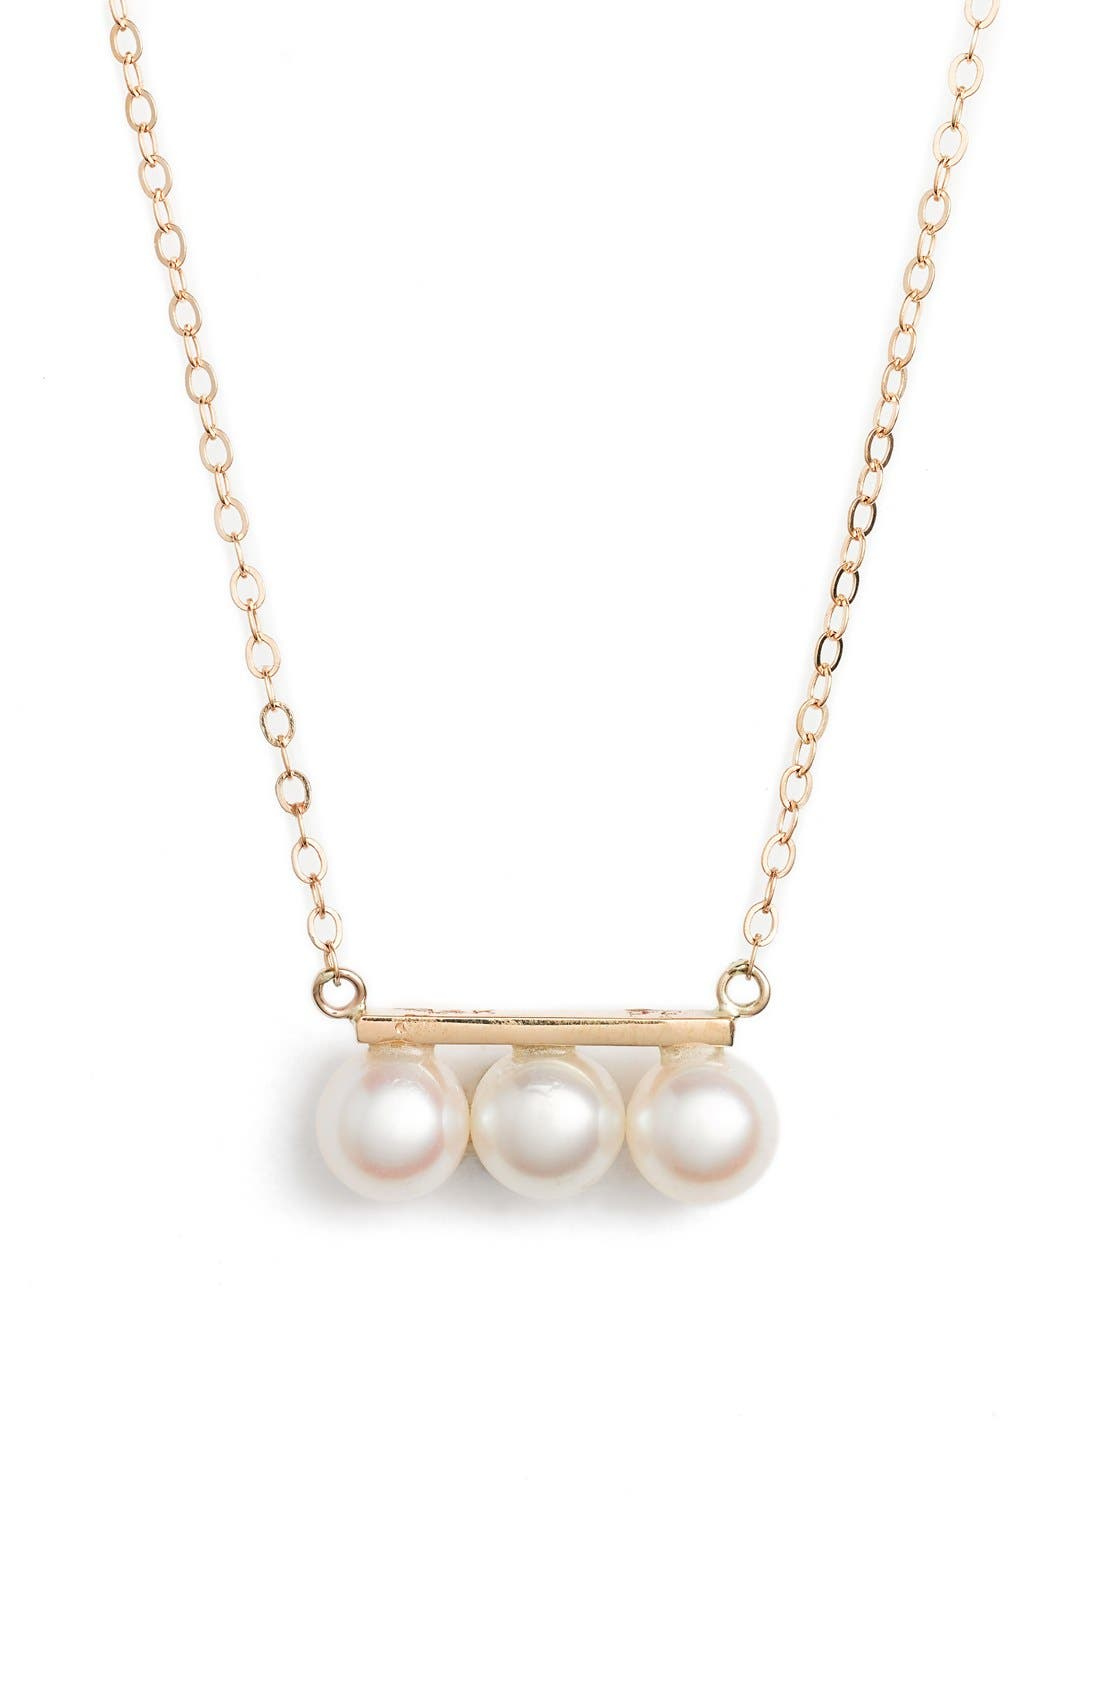 Triple Pearl Pendant Necklace,                         Main,                         color, YELLOW GOLD/ WHITE PEARL